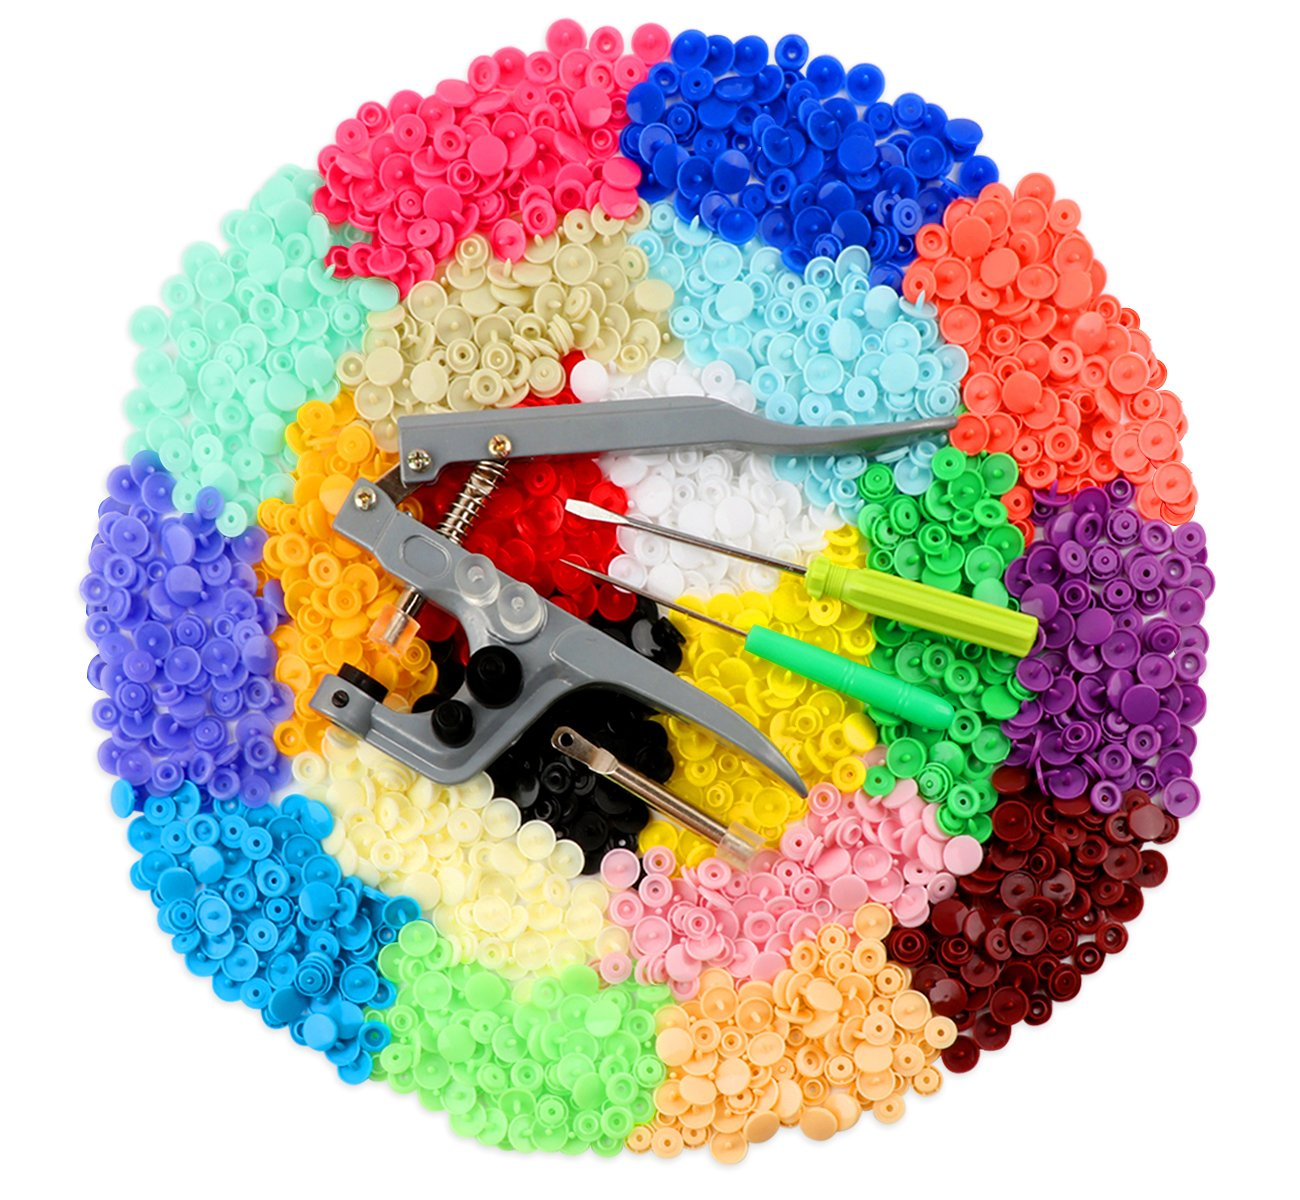 ilauke Snap Buttons Fasteners 20 Colors Poppers with Snap Pliers, 400 Sets ilauke-buttons kit 400